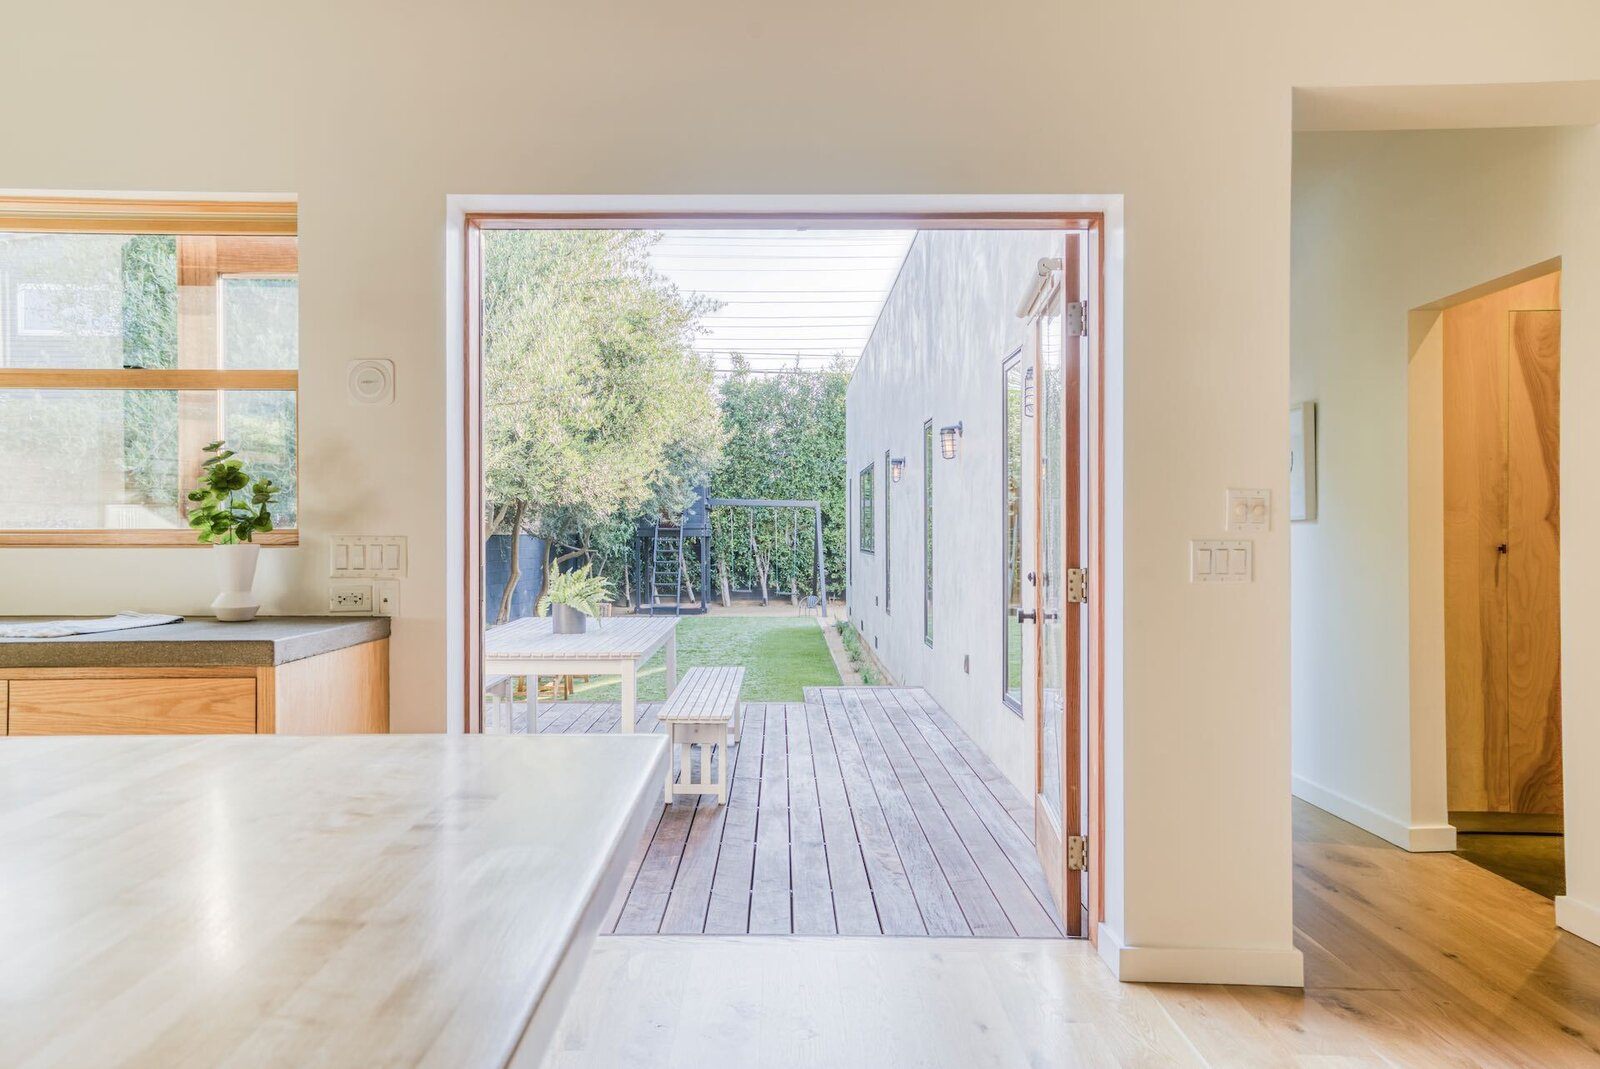 French doors open to the deck and yard, while a long hallway connects the great room to the home's bedrooms.  Photo 6 of 15 in In Los Angeles, a Remixed Craftsman Bungalow Lists for $1.9M